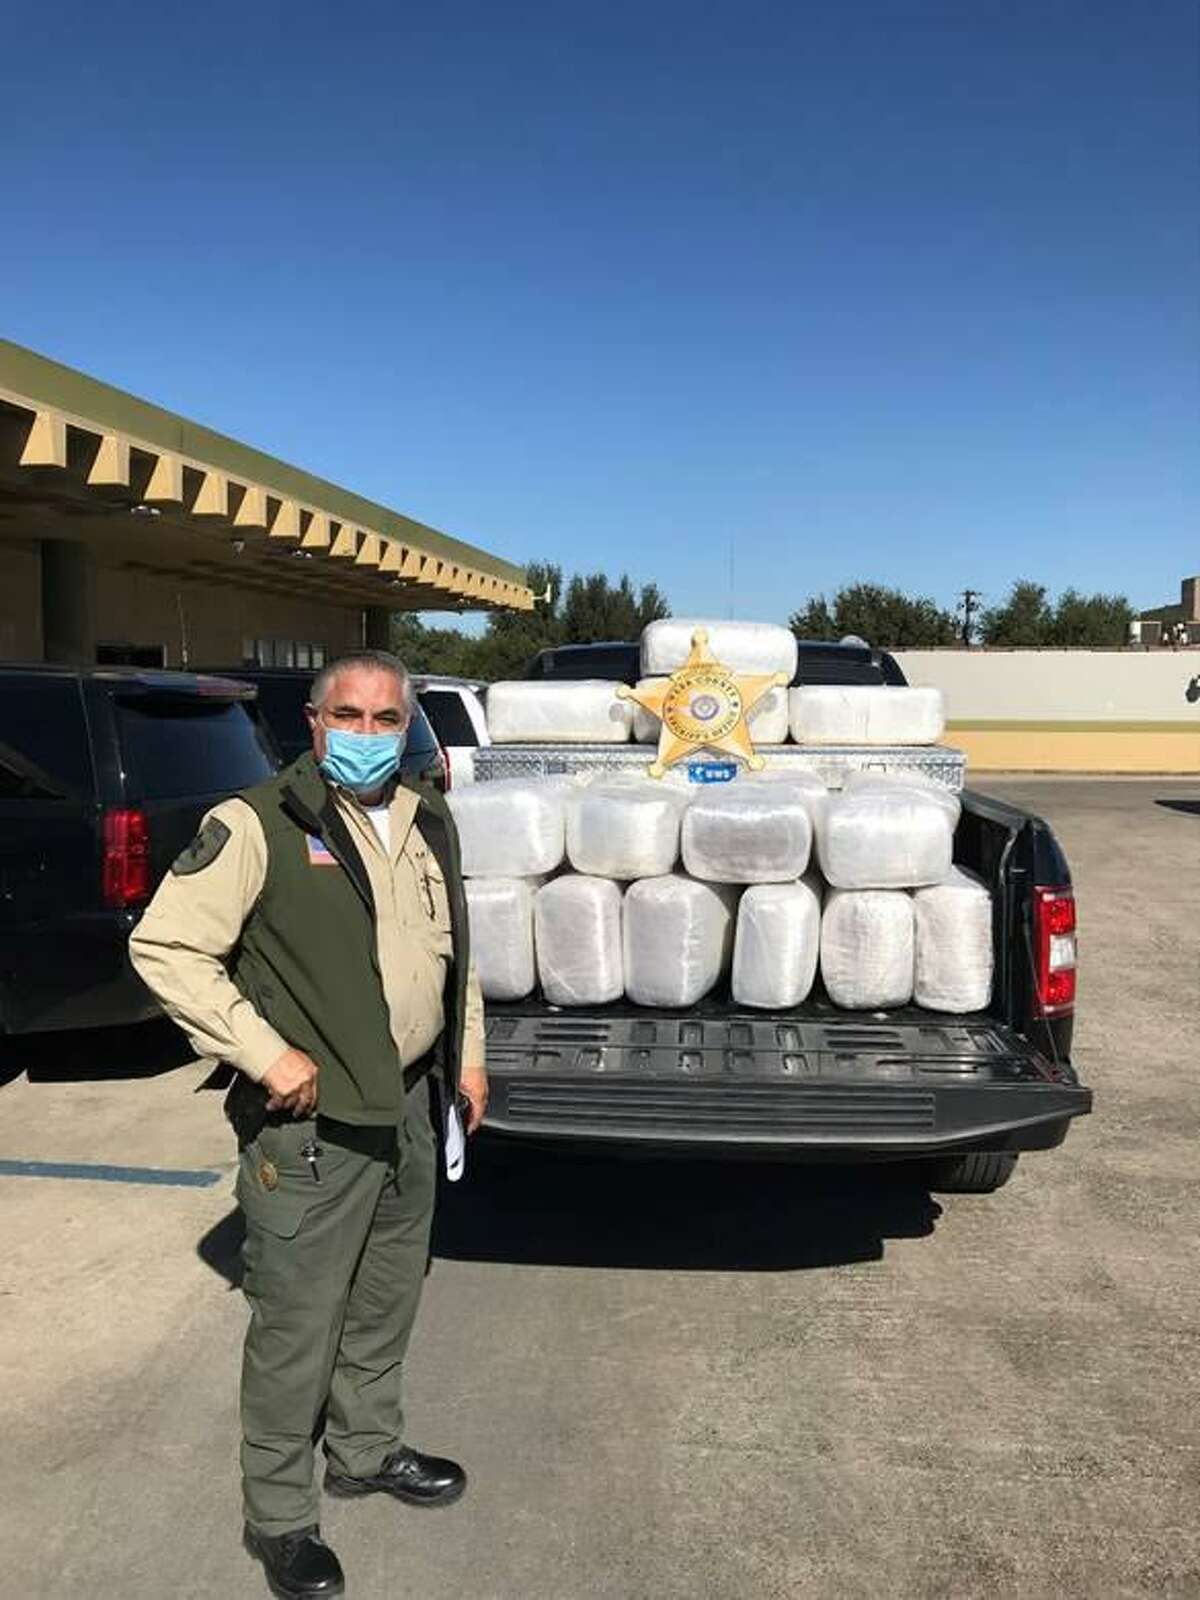 Webb County Sheriff Martin Cuellar said deputies seized these 635 pounds of marijuana following a brief pursuit with a vehicle. The driver abandoned the contraband and swam across into Mexico.